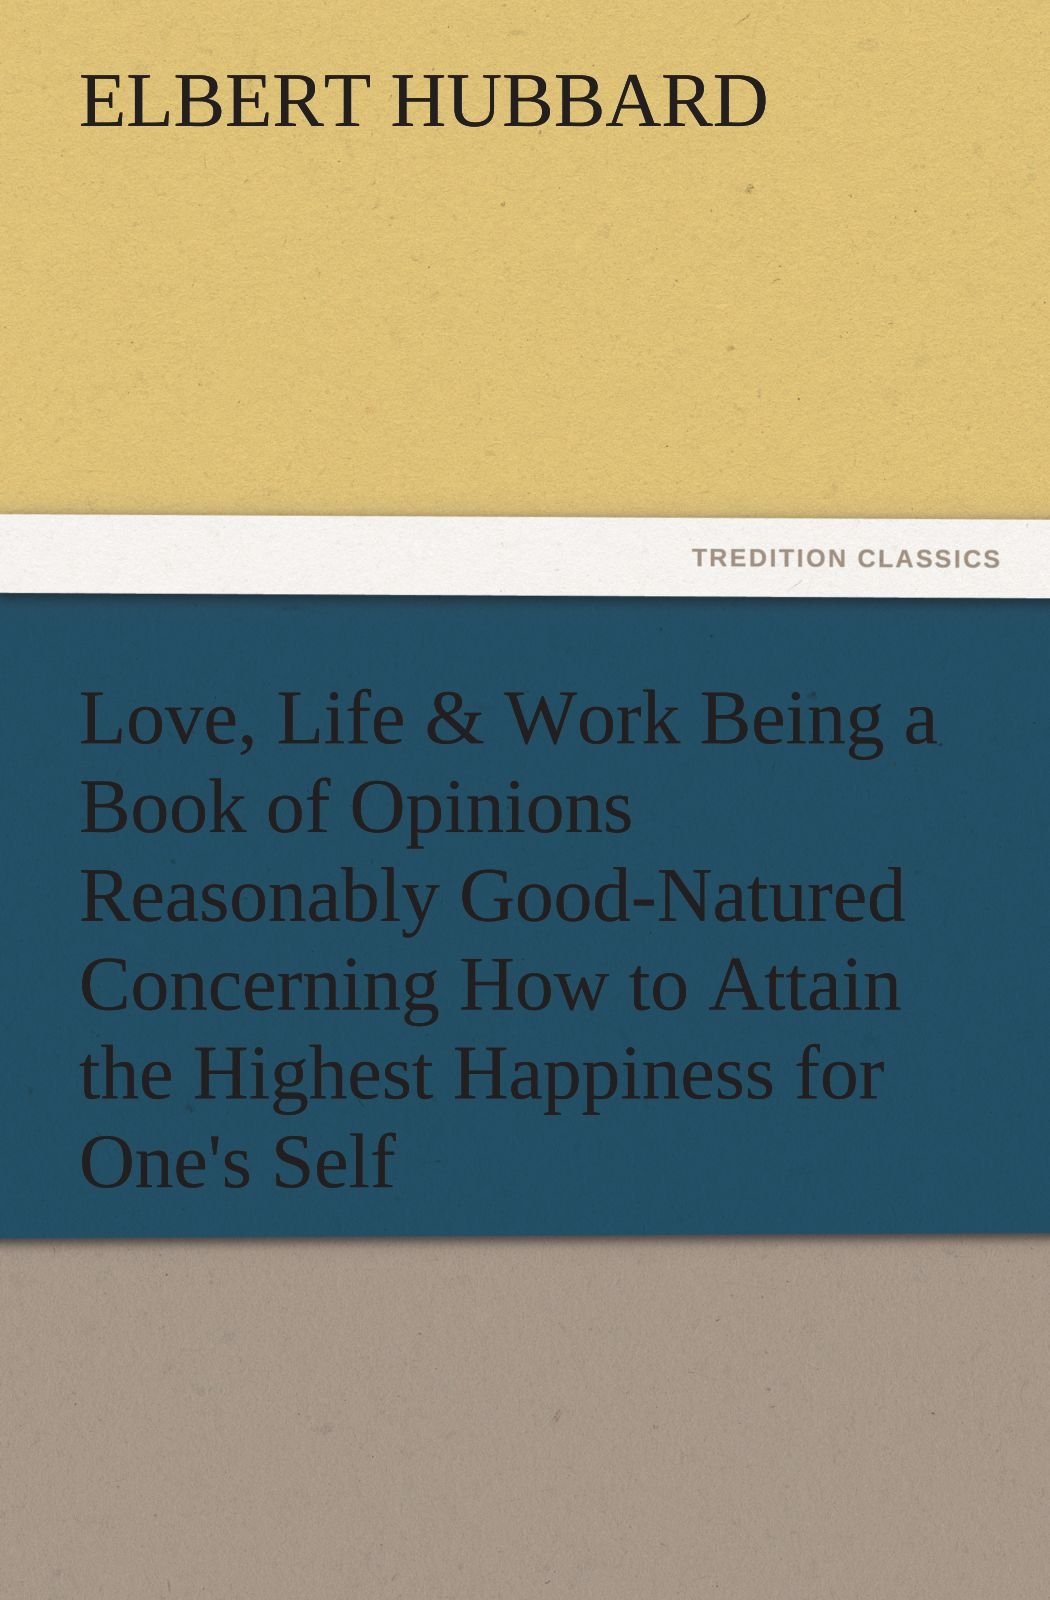 Love, Life & Work Being a Book of Opinions Reasonably Good-Natured Concerning How to Attain the Highest Happiness for One's Self (TREDITION CLASSICS) PDF